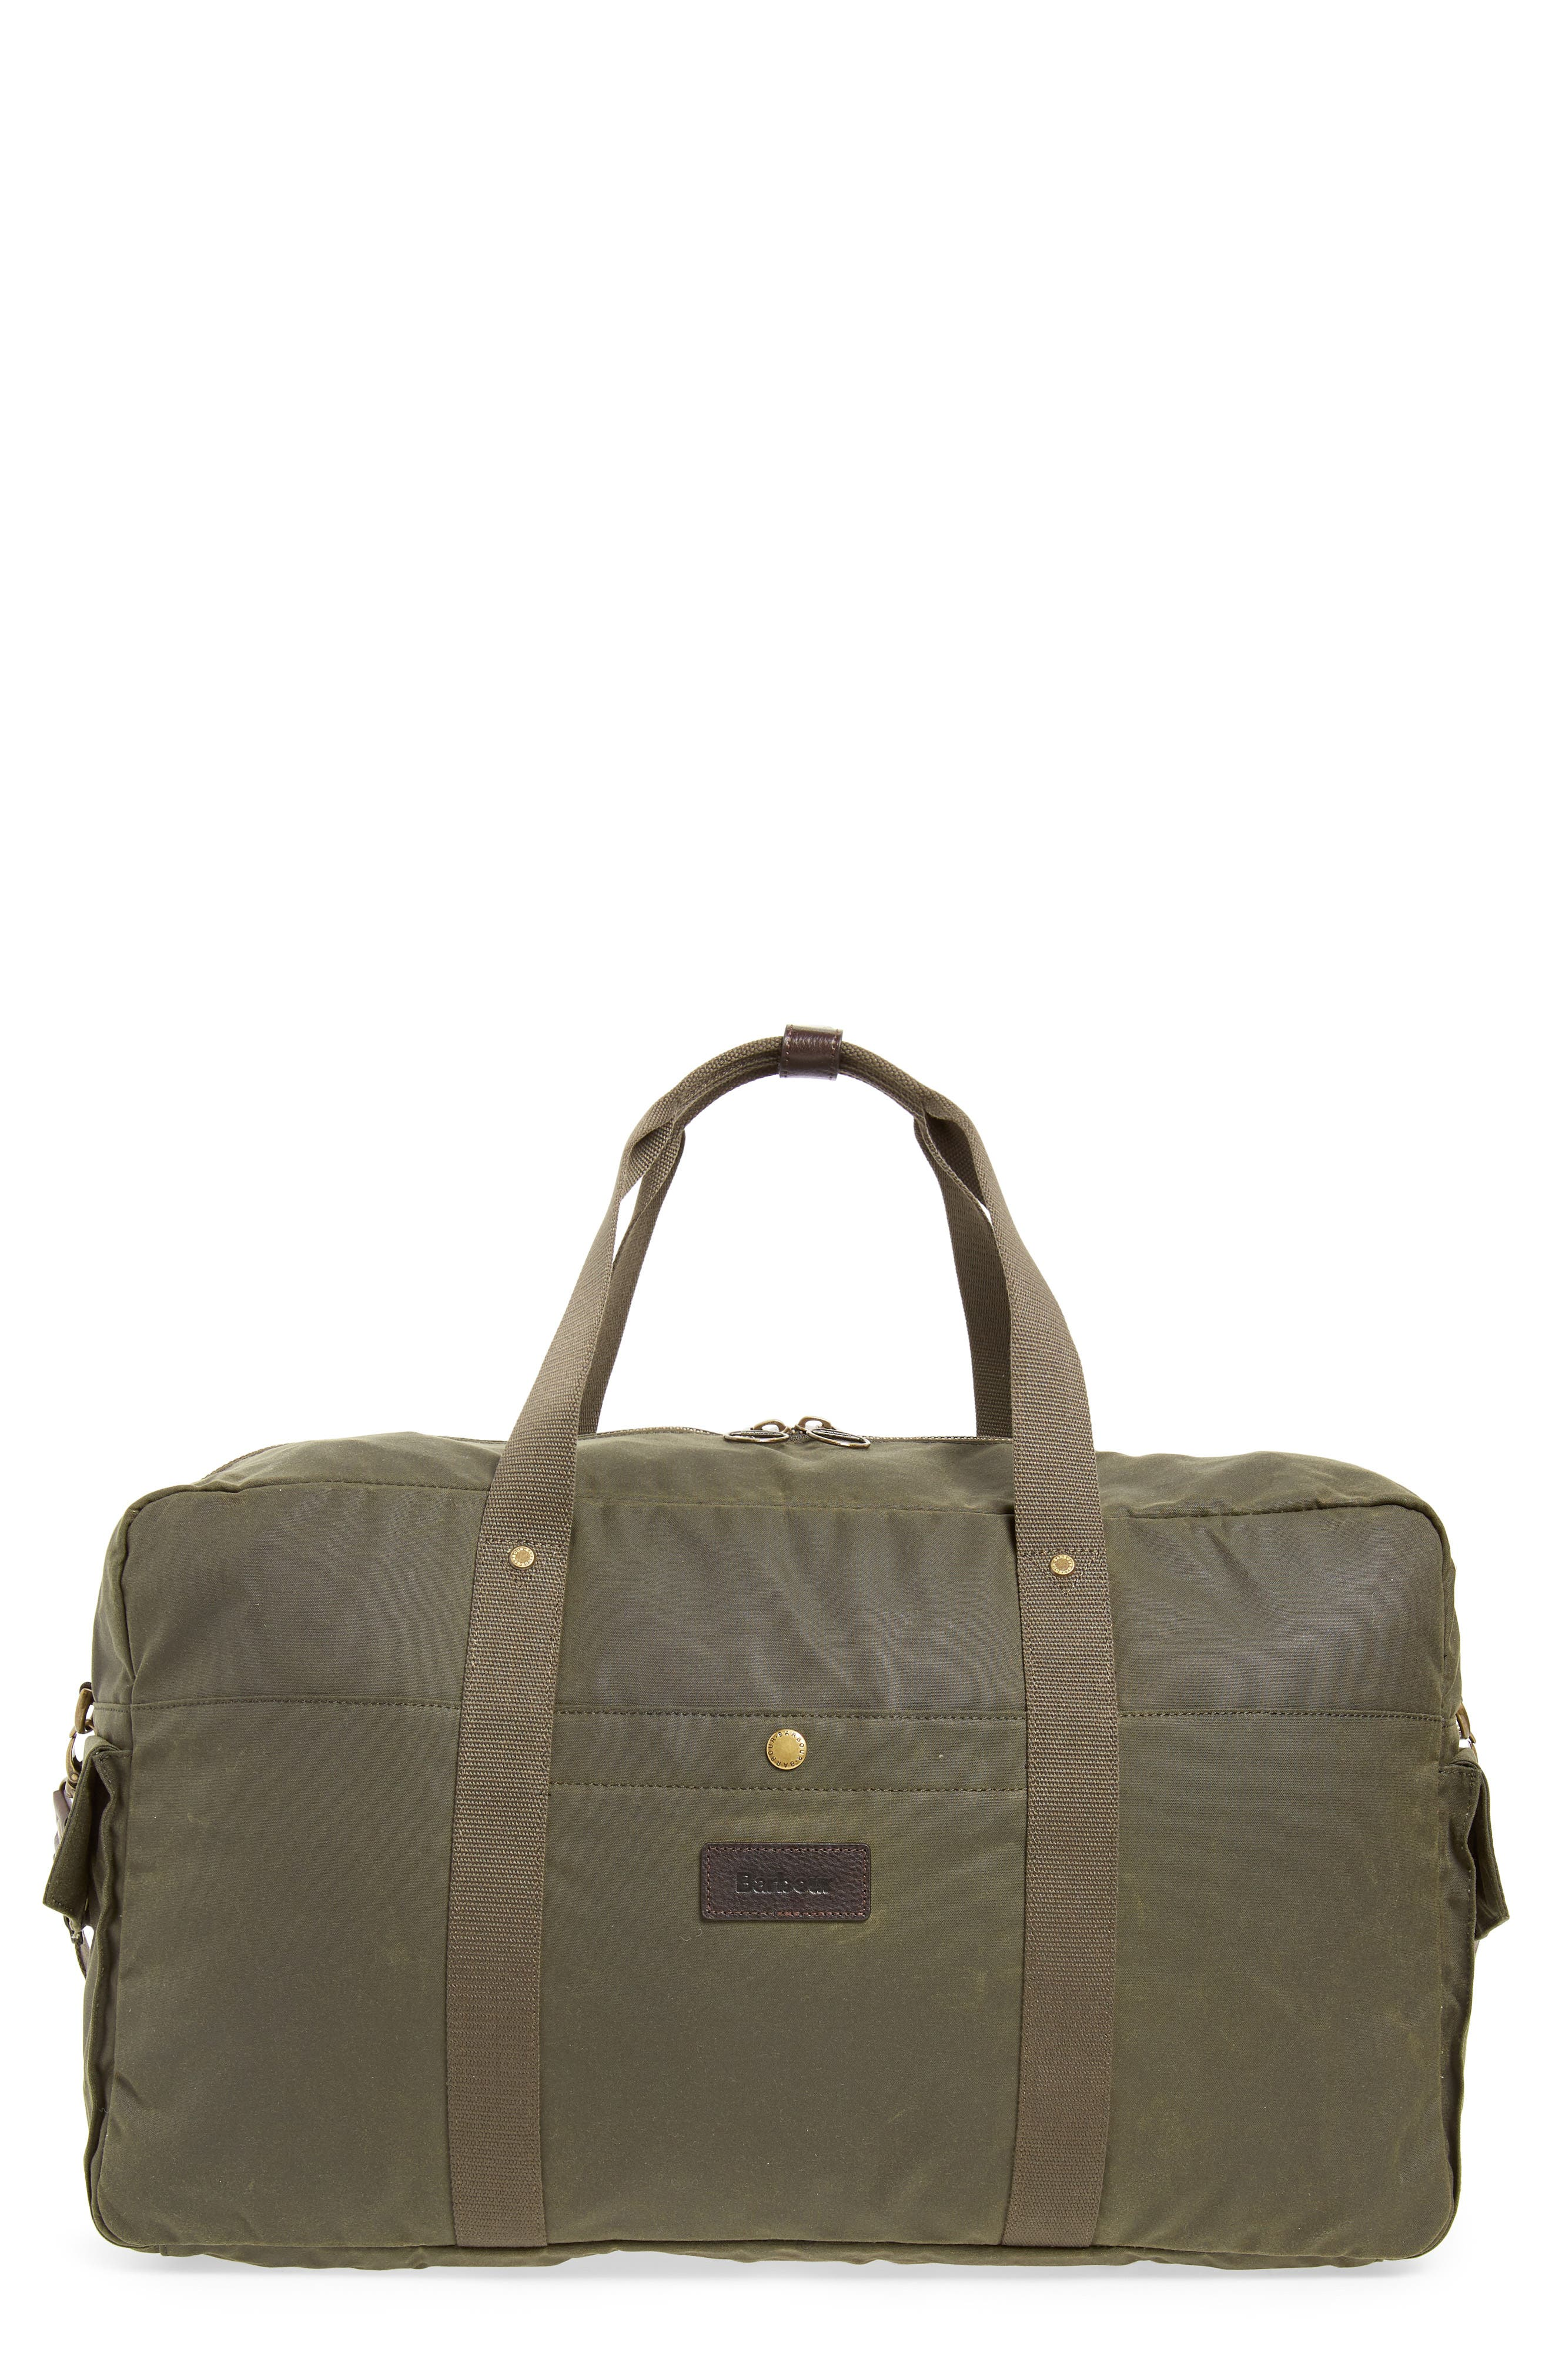 Oakwell Duffel Bag,                         Main,                         color, ARCHIVE OLIVE